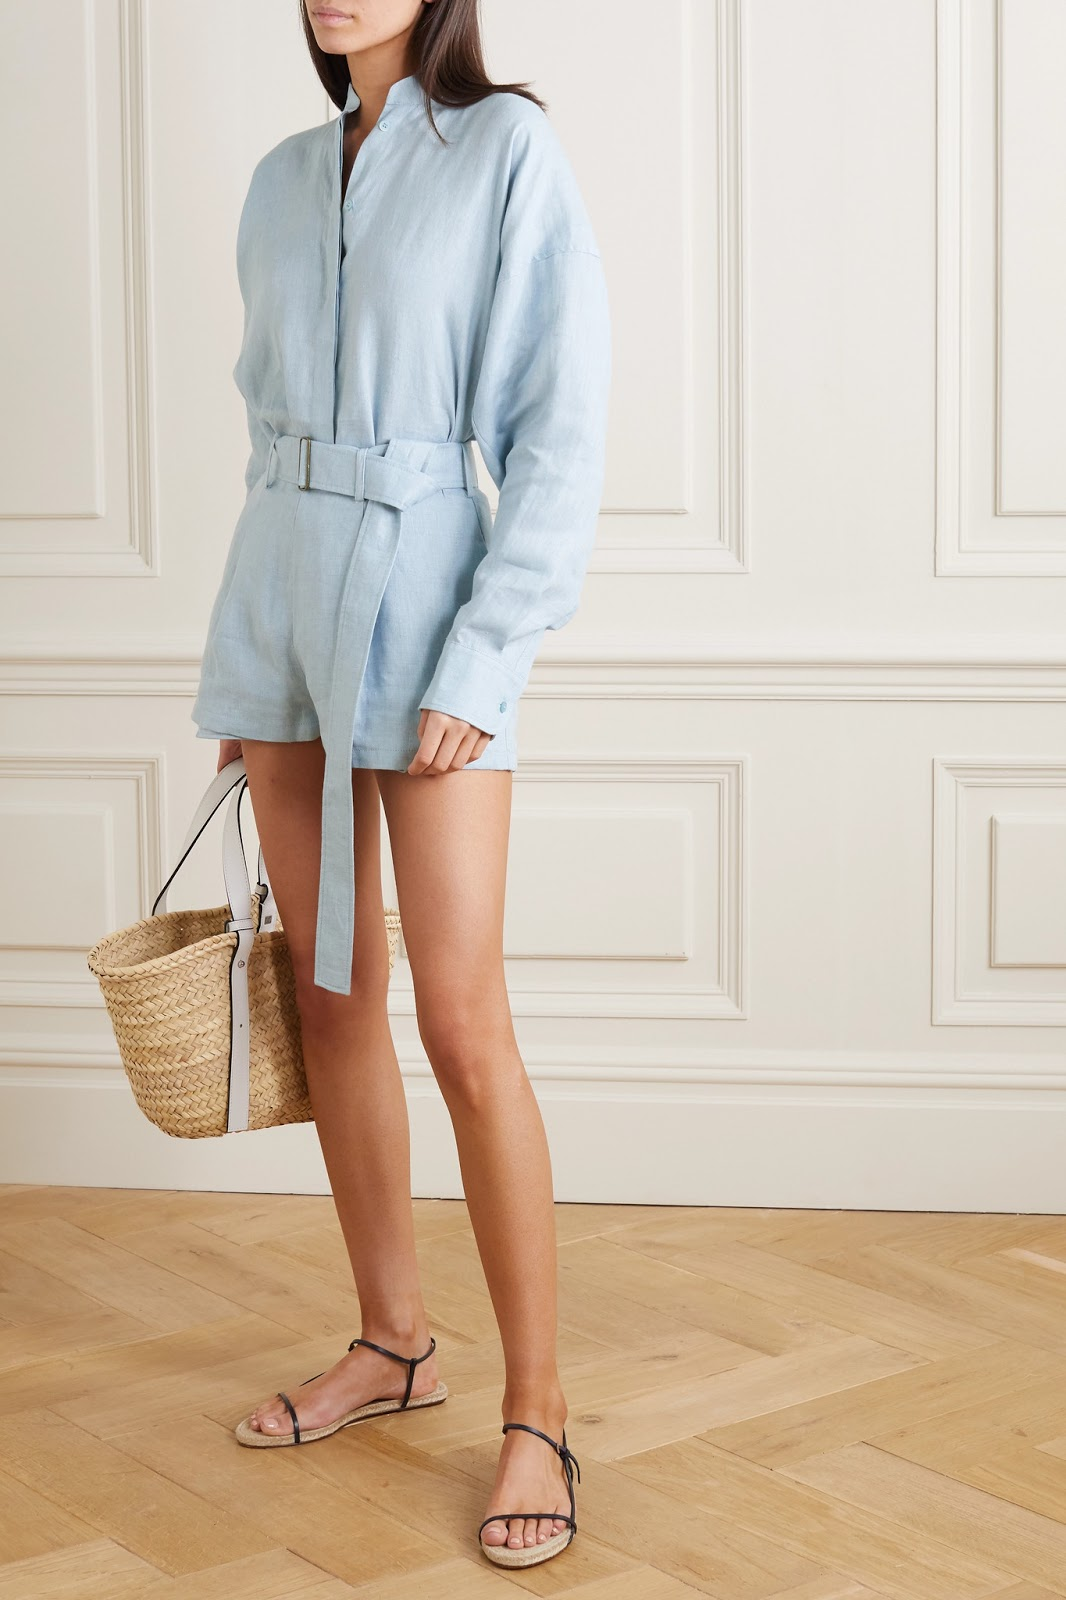 Stylish Sustainable Style — Baby Blue Linen Top and Matching Linen Shorts